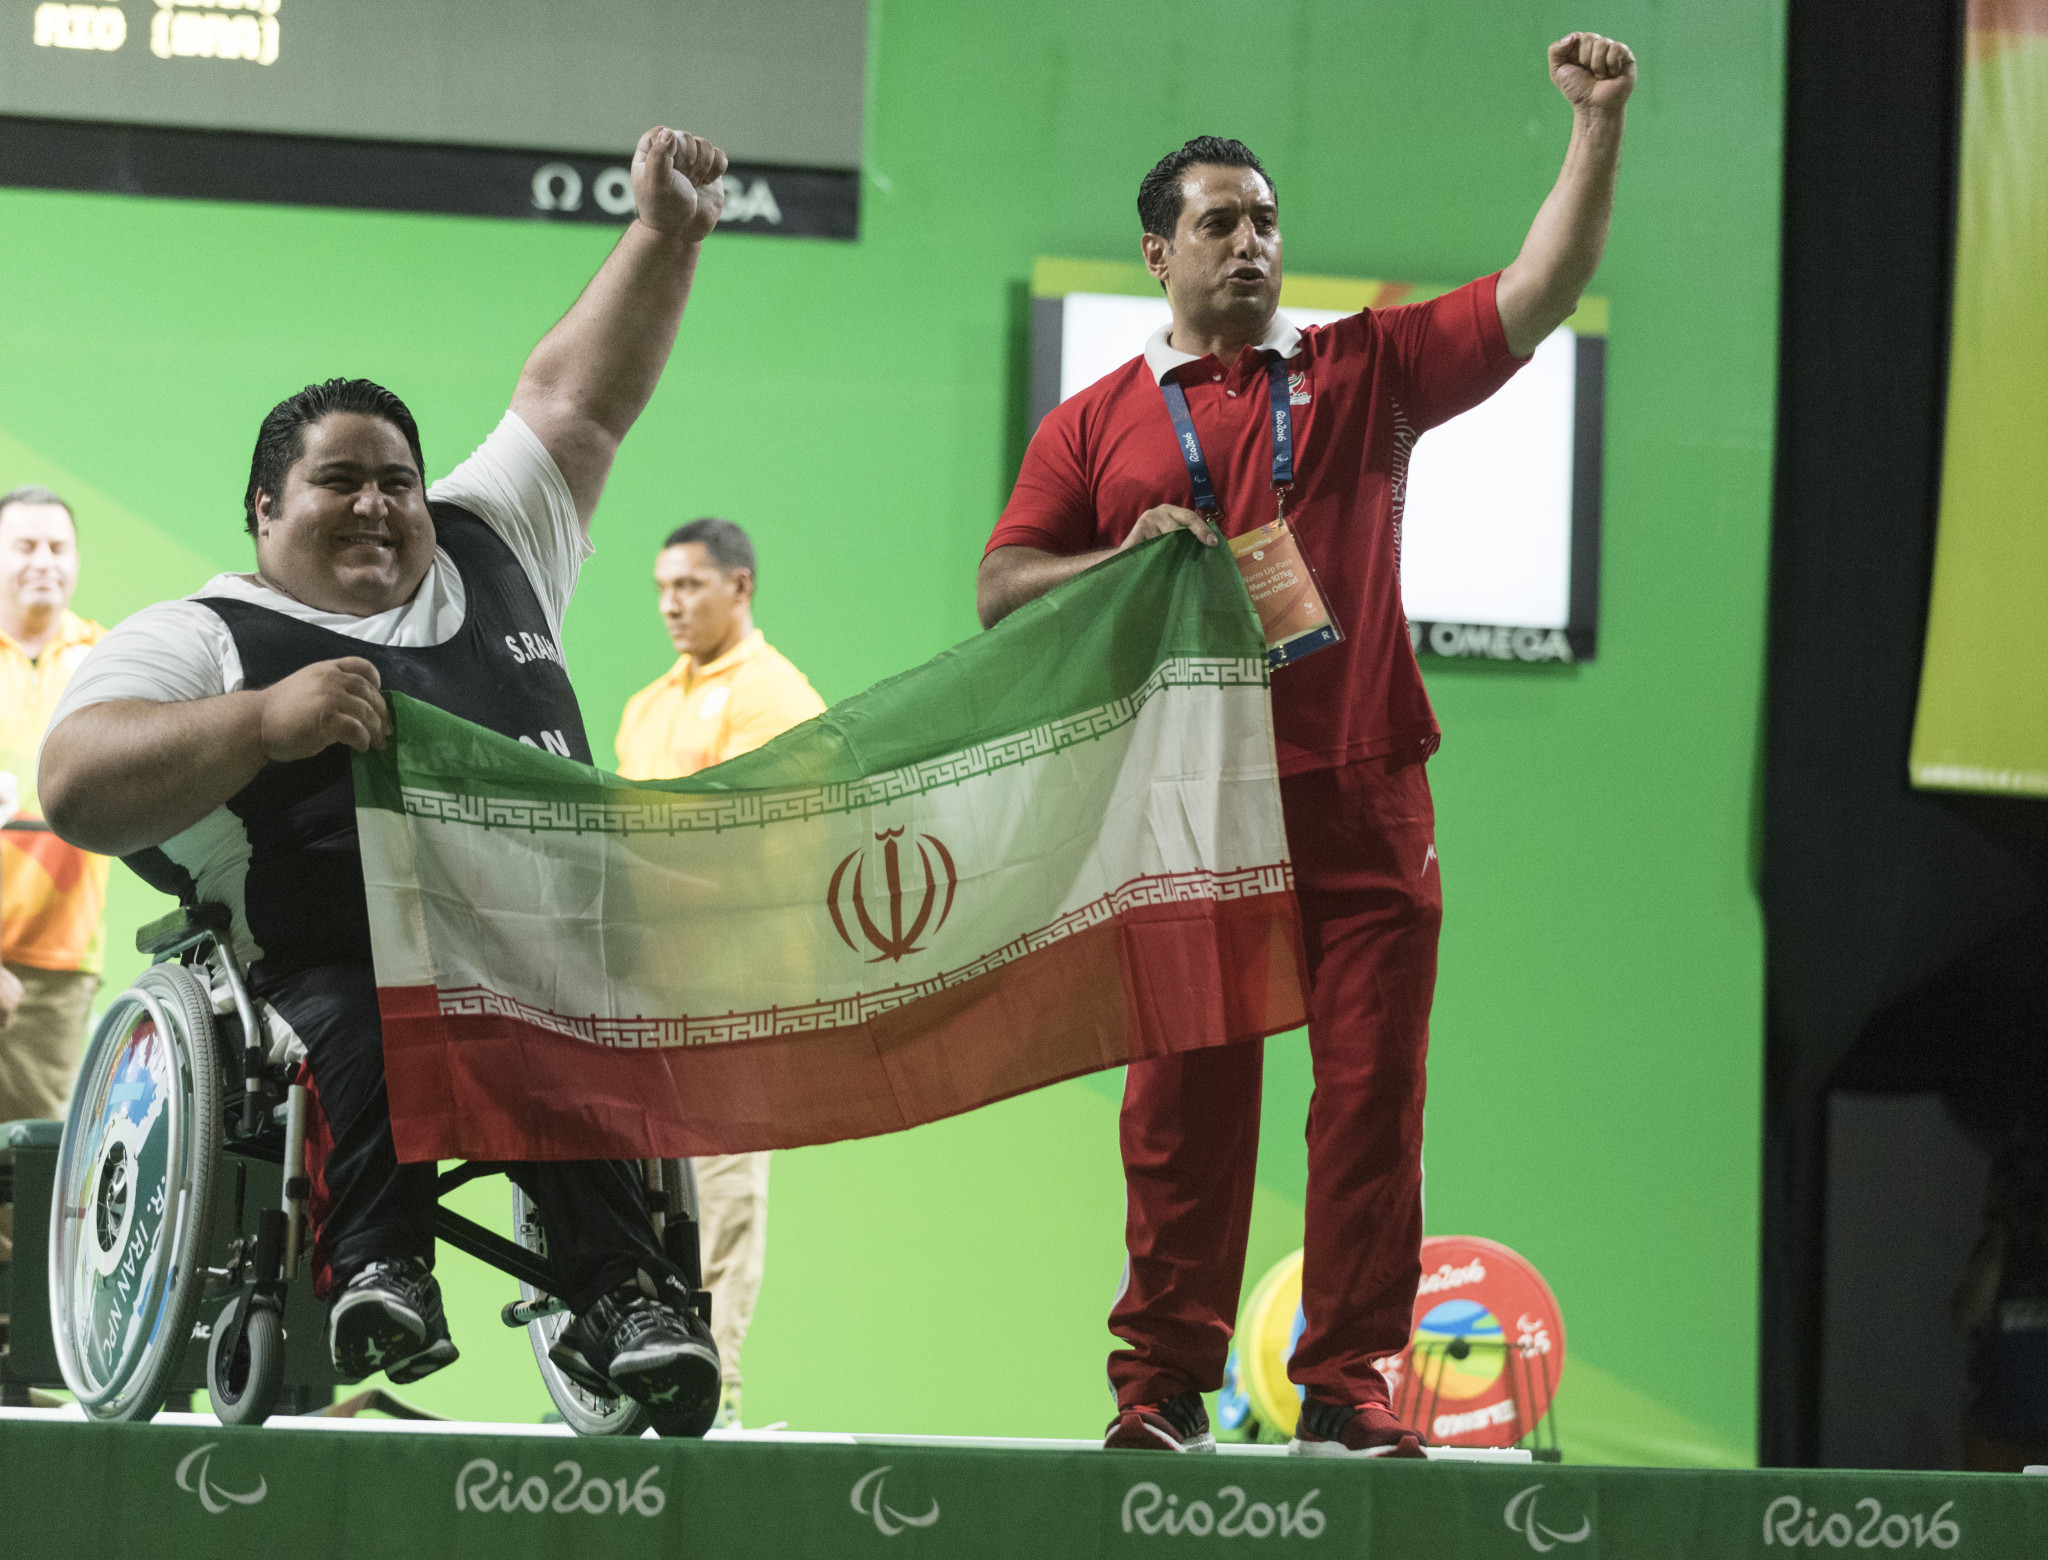 Olympic gold medallist appointed head coach of Iranian Para powerlifting team